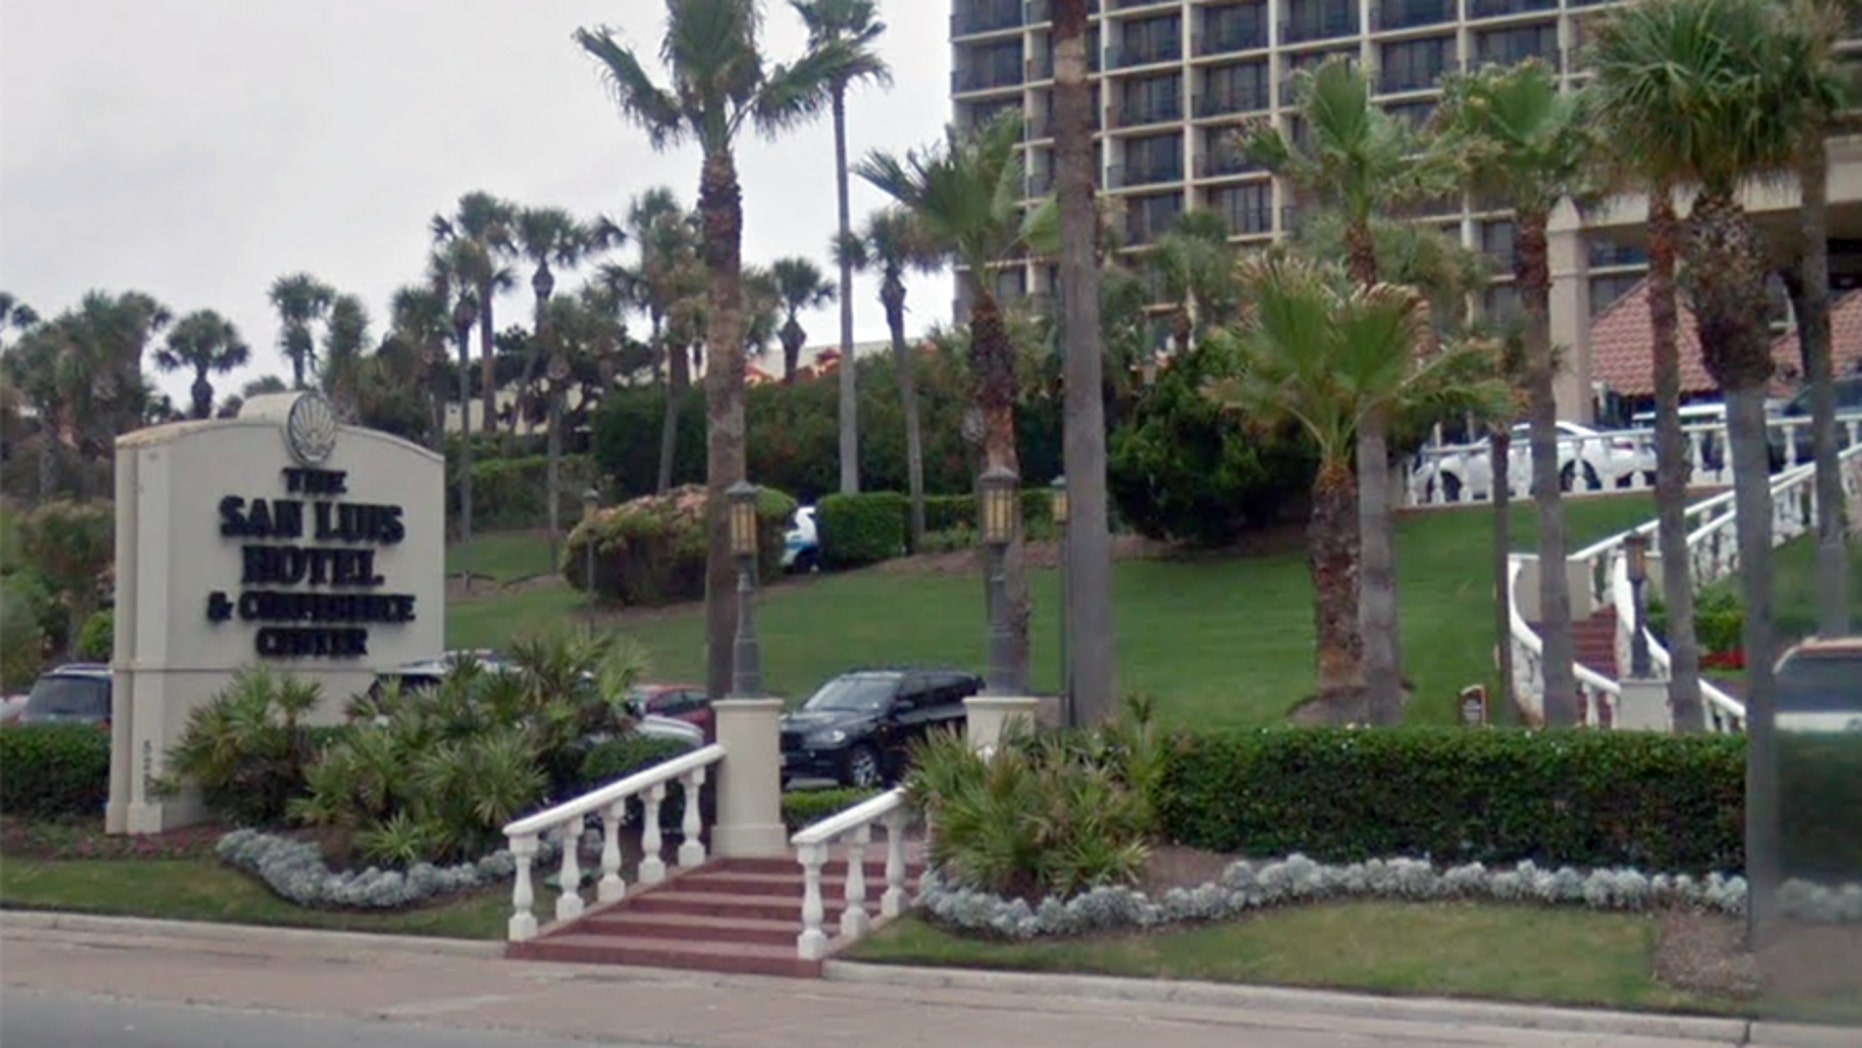 The San Luis Resort, Spa and Conference Center was the scene of a murder-suicide on Monday, police say.